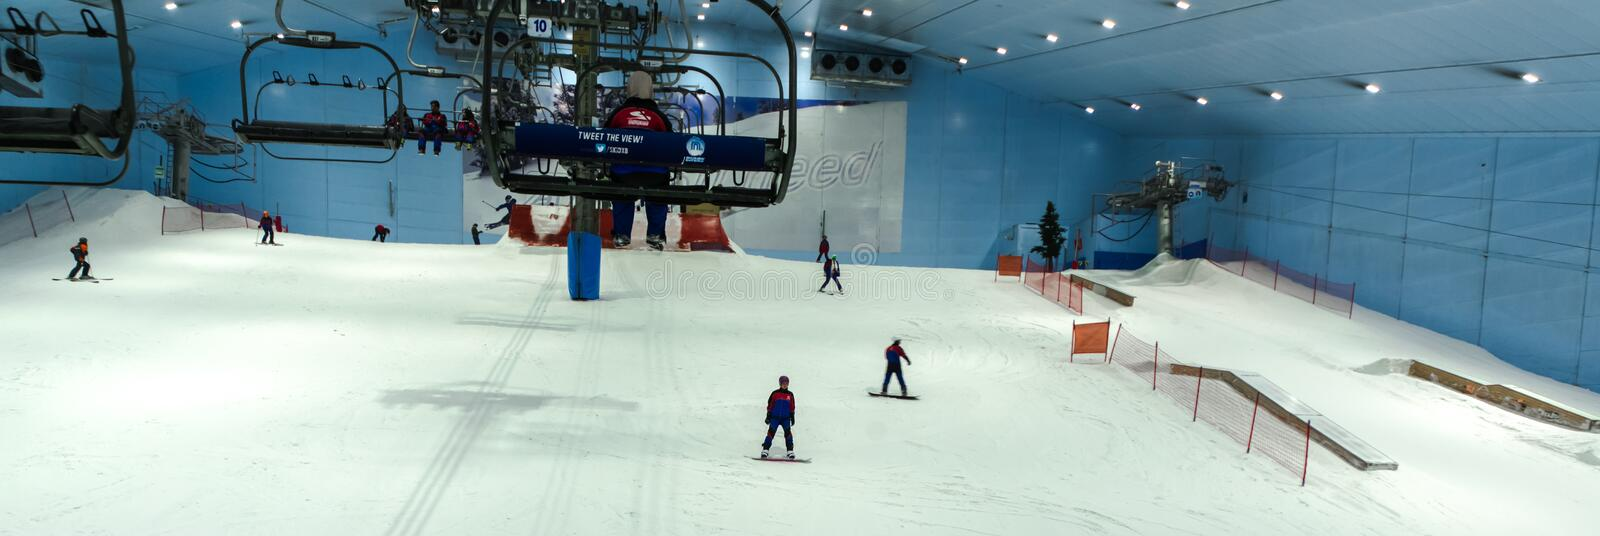 Enjoy snow in the desert at Ski Dubai stock photography